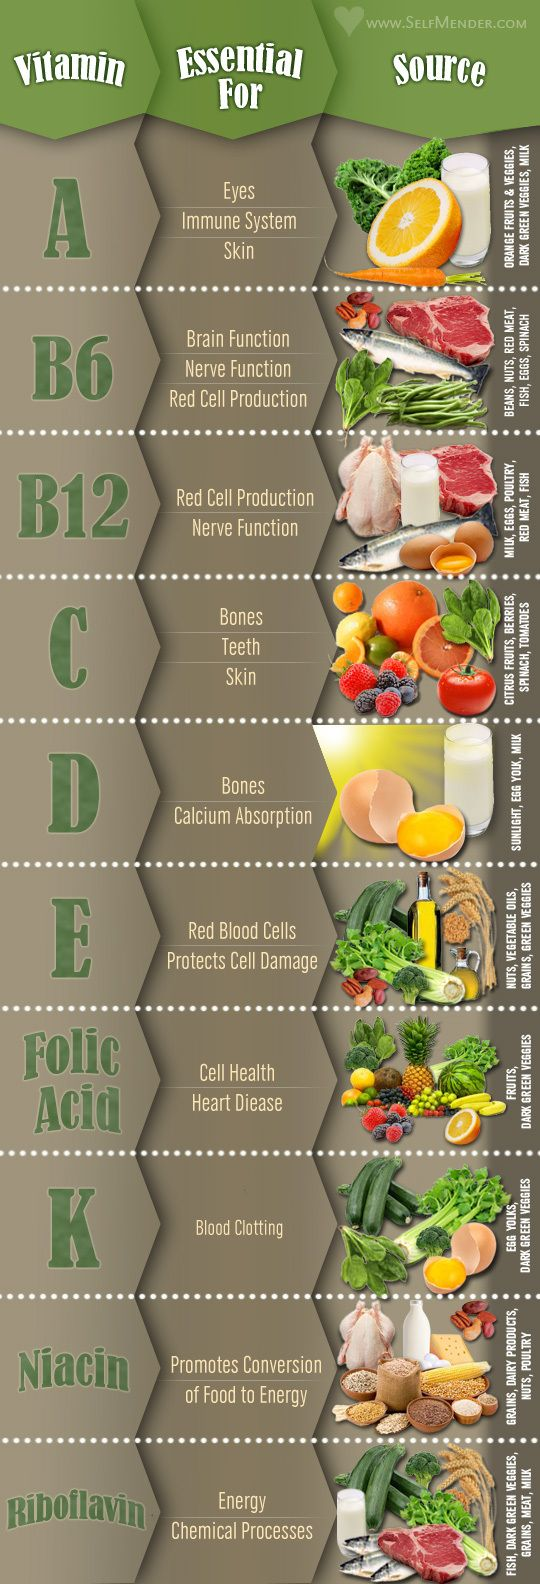 Vitamins - What they do and where to find them. #chart #food #healthy #vitamins #eating